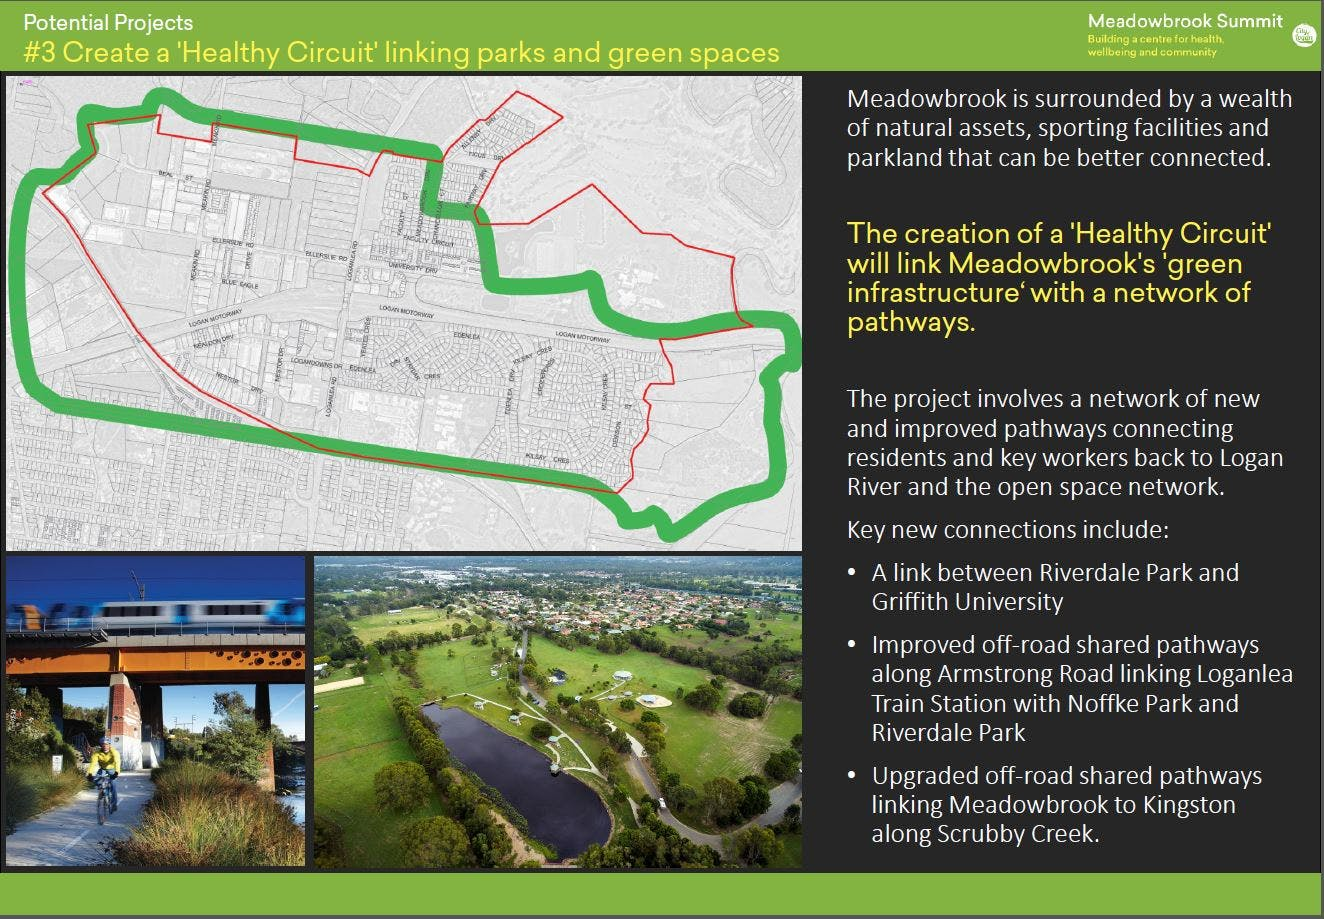 3. Create a 'Healthy Circuit' linking parks and green spaces